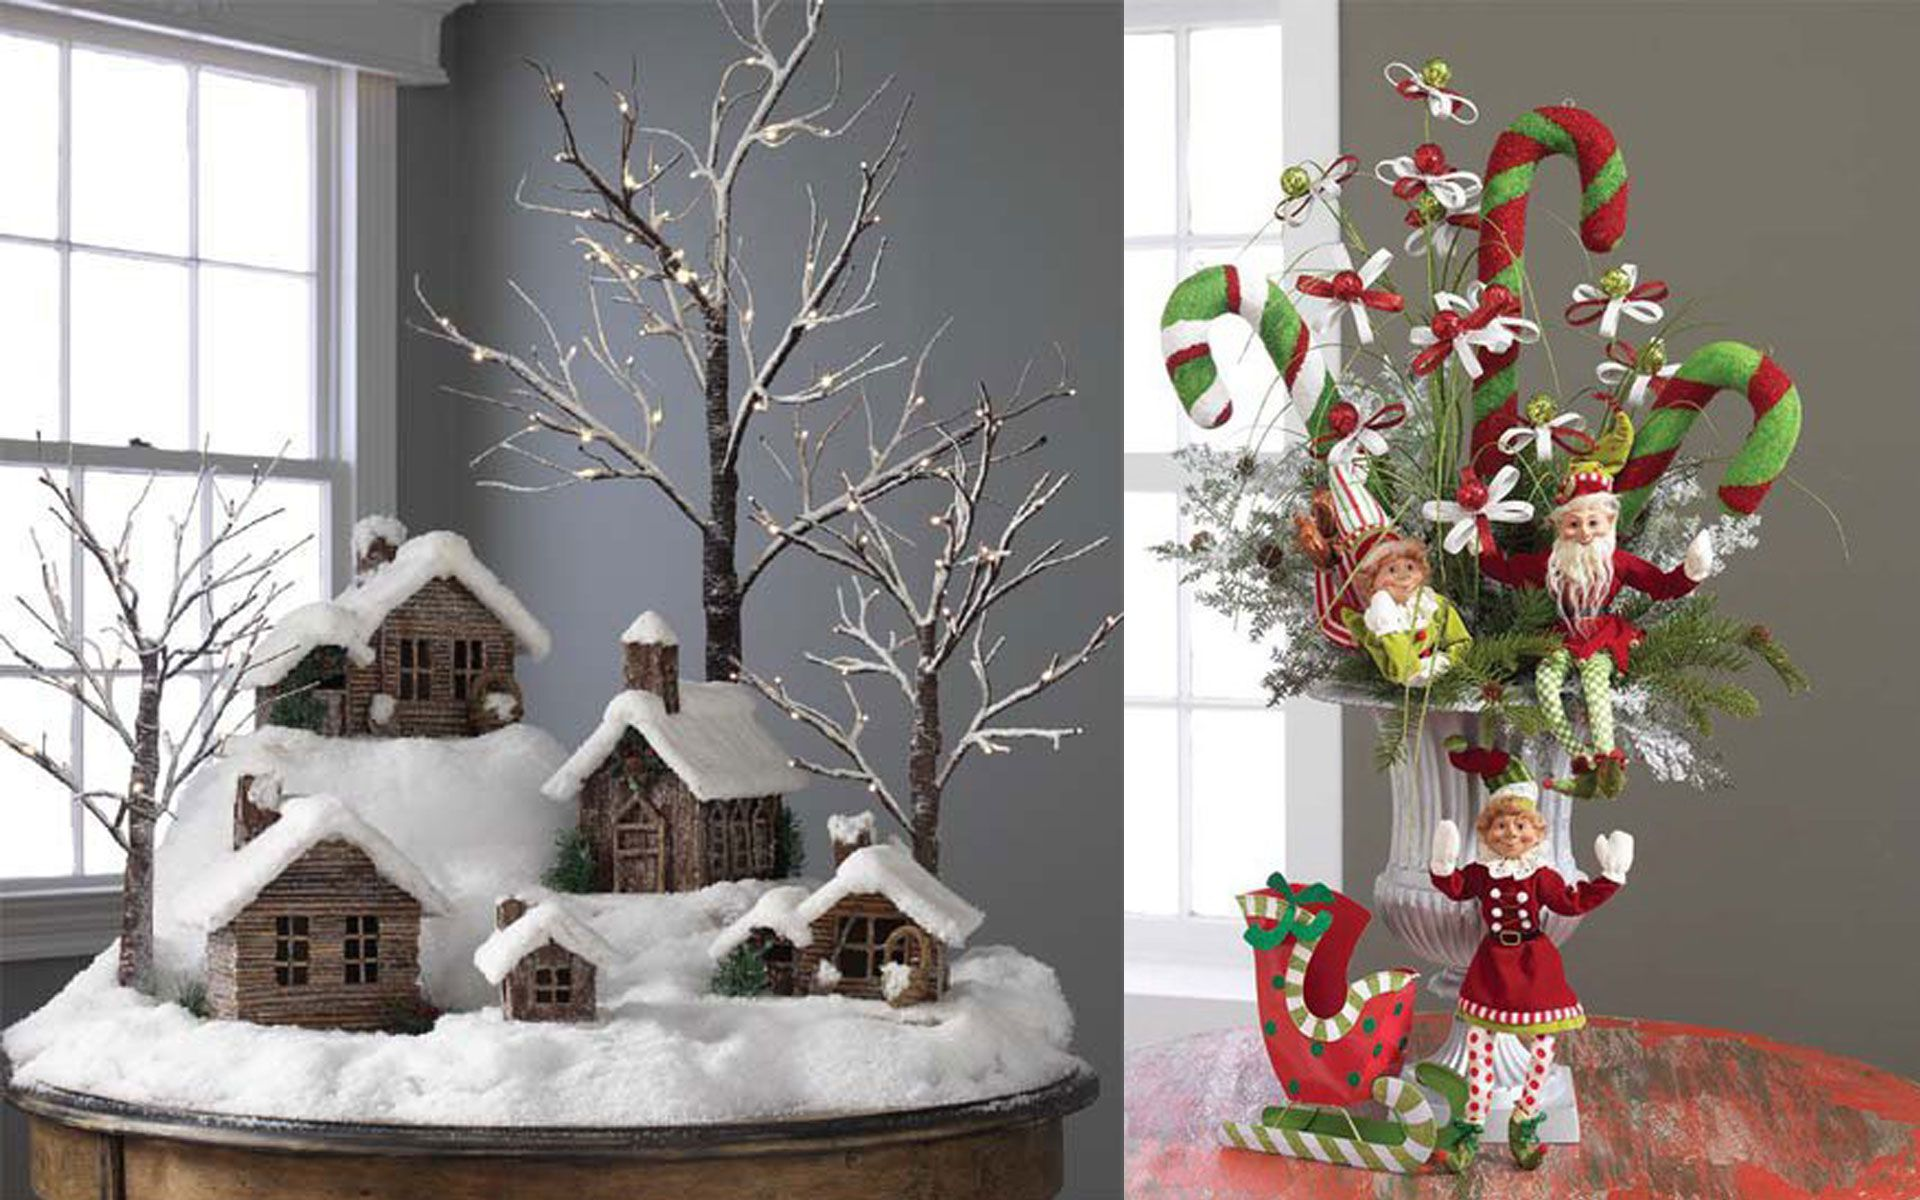 1000+ images about Making Christmas ornaments on Pinterest ...